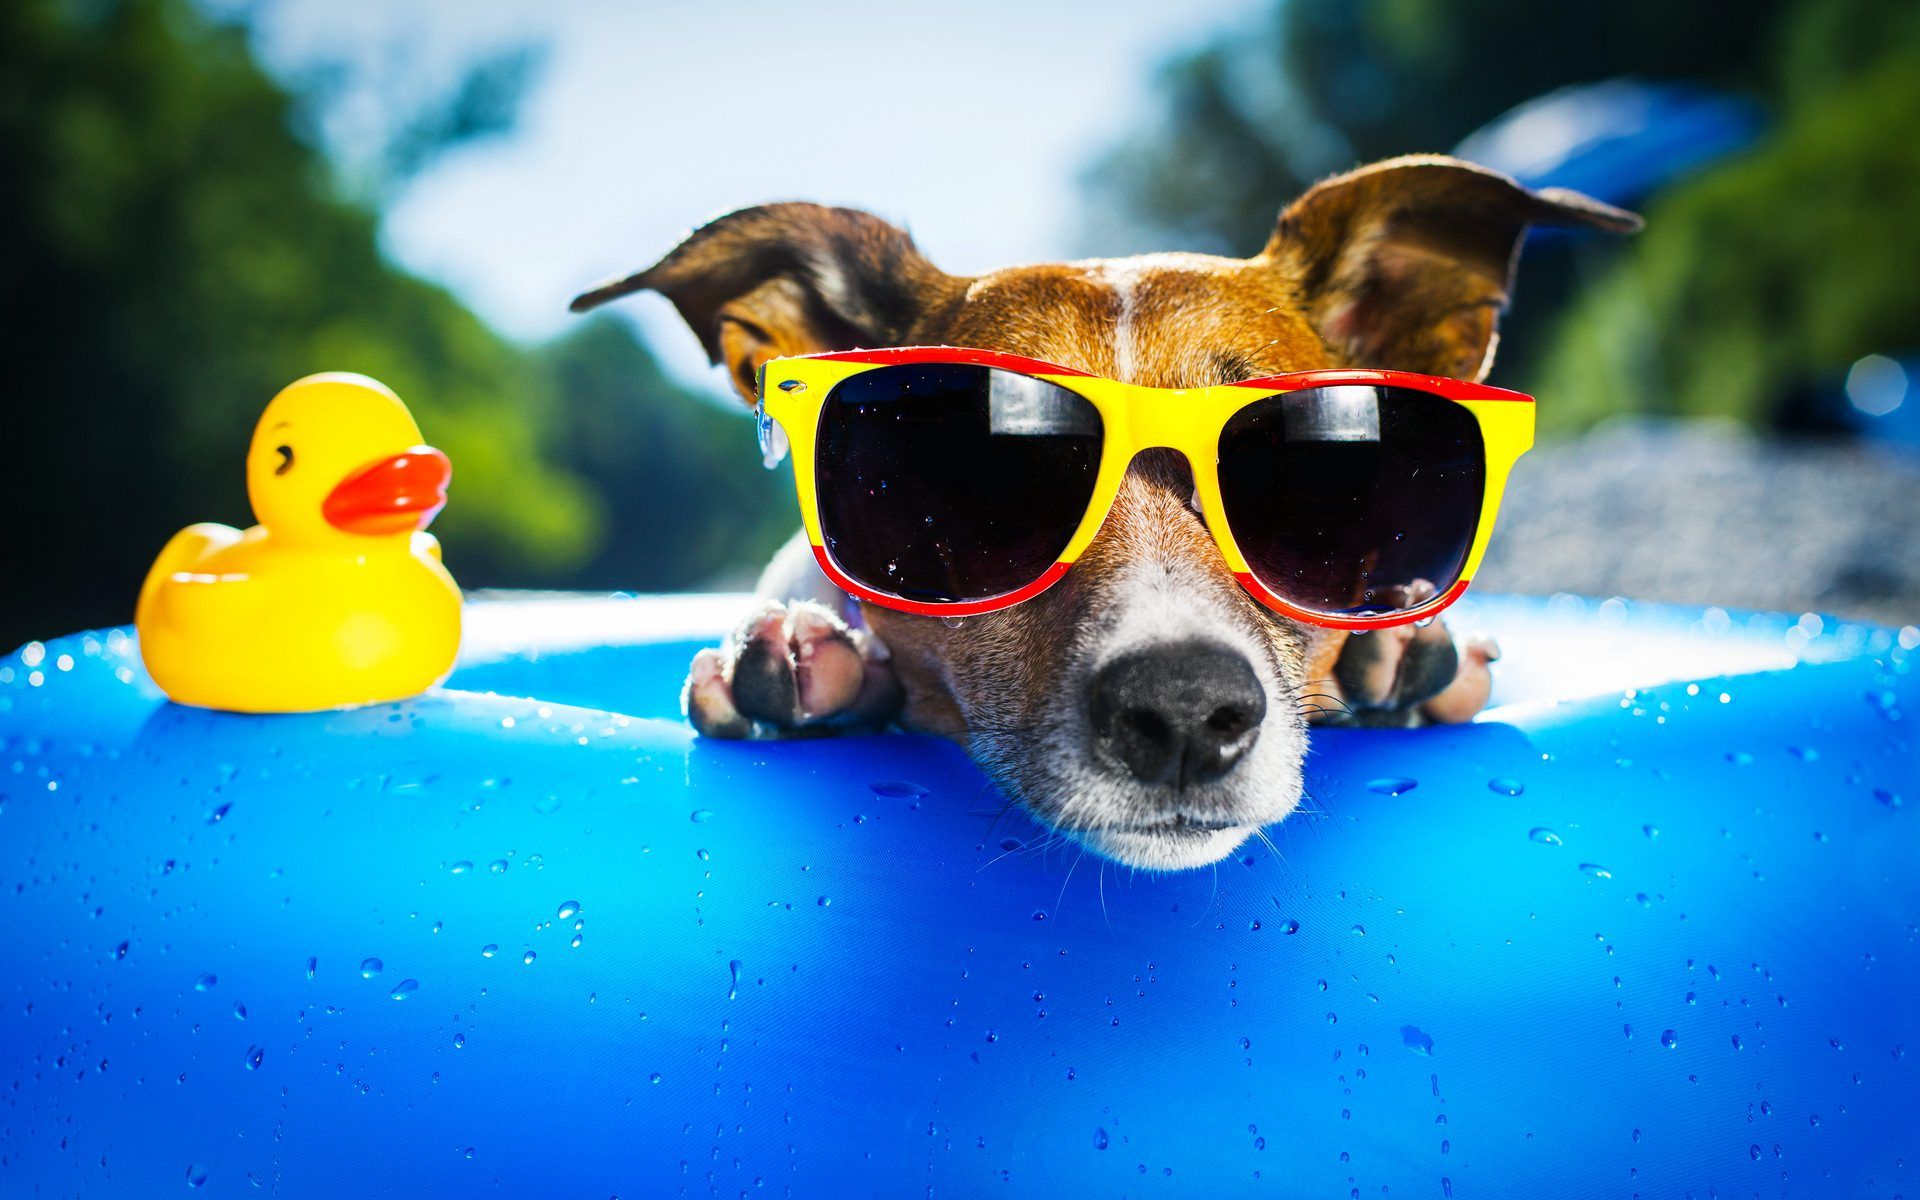 Cool Dog With Sunglasses Dogs, cats and other critters